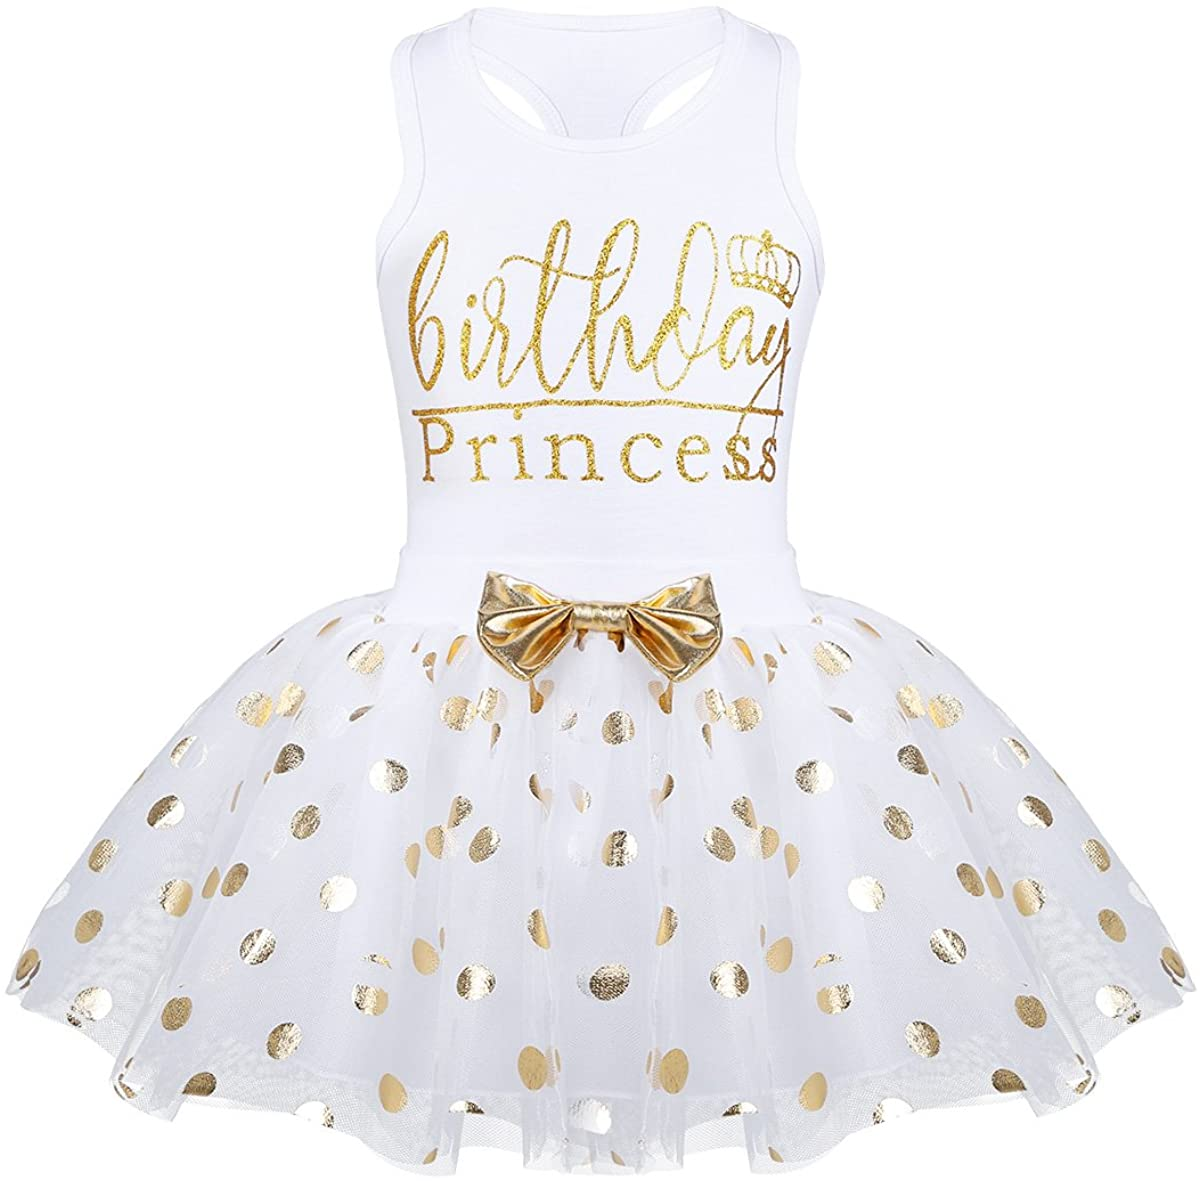 YONGHS Kids Baby Girls First Birthday Party Outfits Sleeveless Letters Printed Top with Polka Dots Tutu Skirt Set Casual Wear